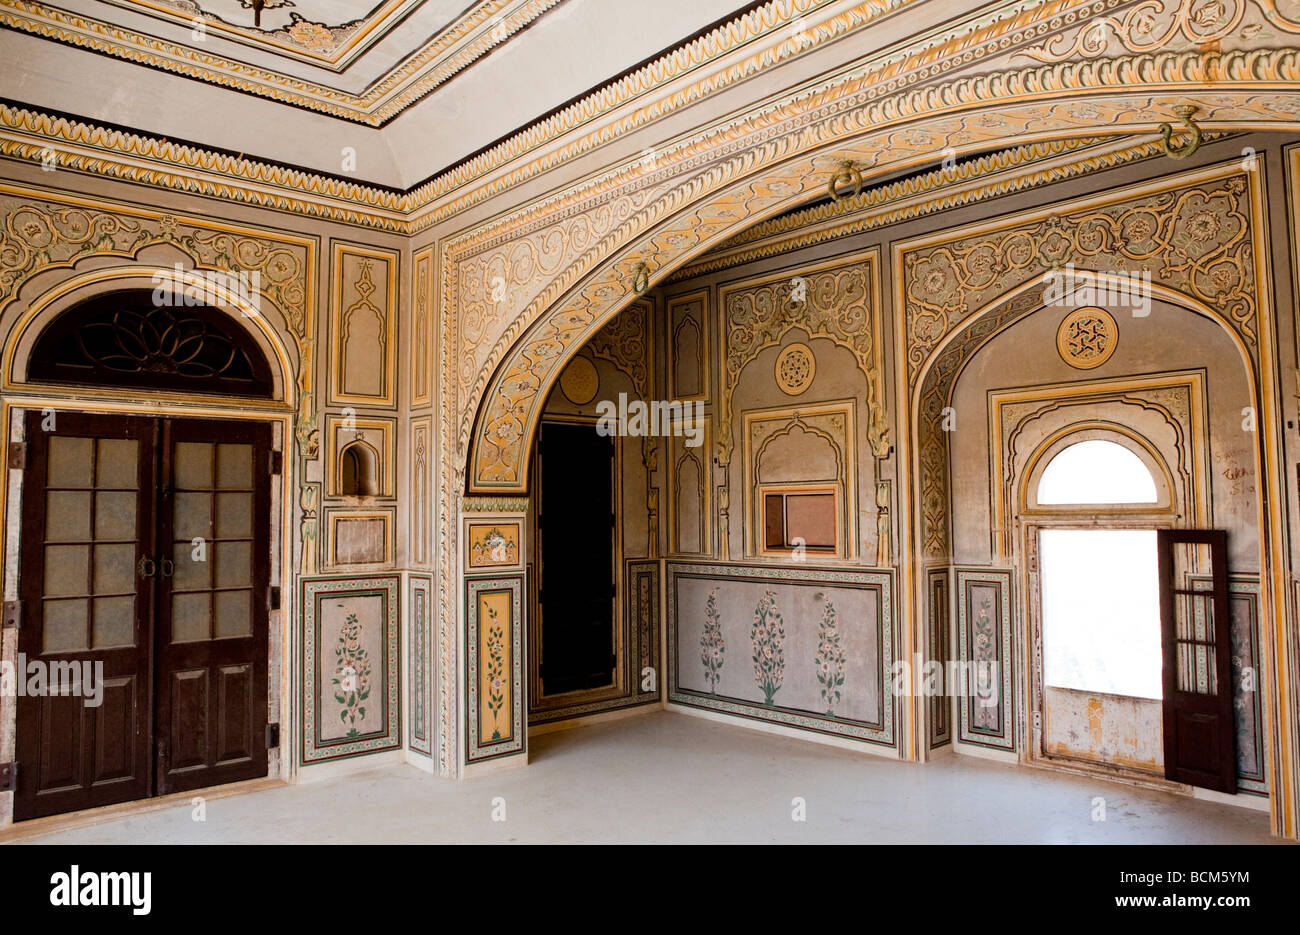 Interior Of The Amber Fort Jaipur Rajasthan India Stock